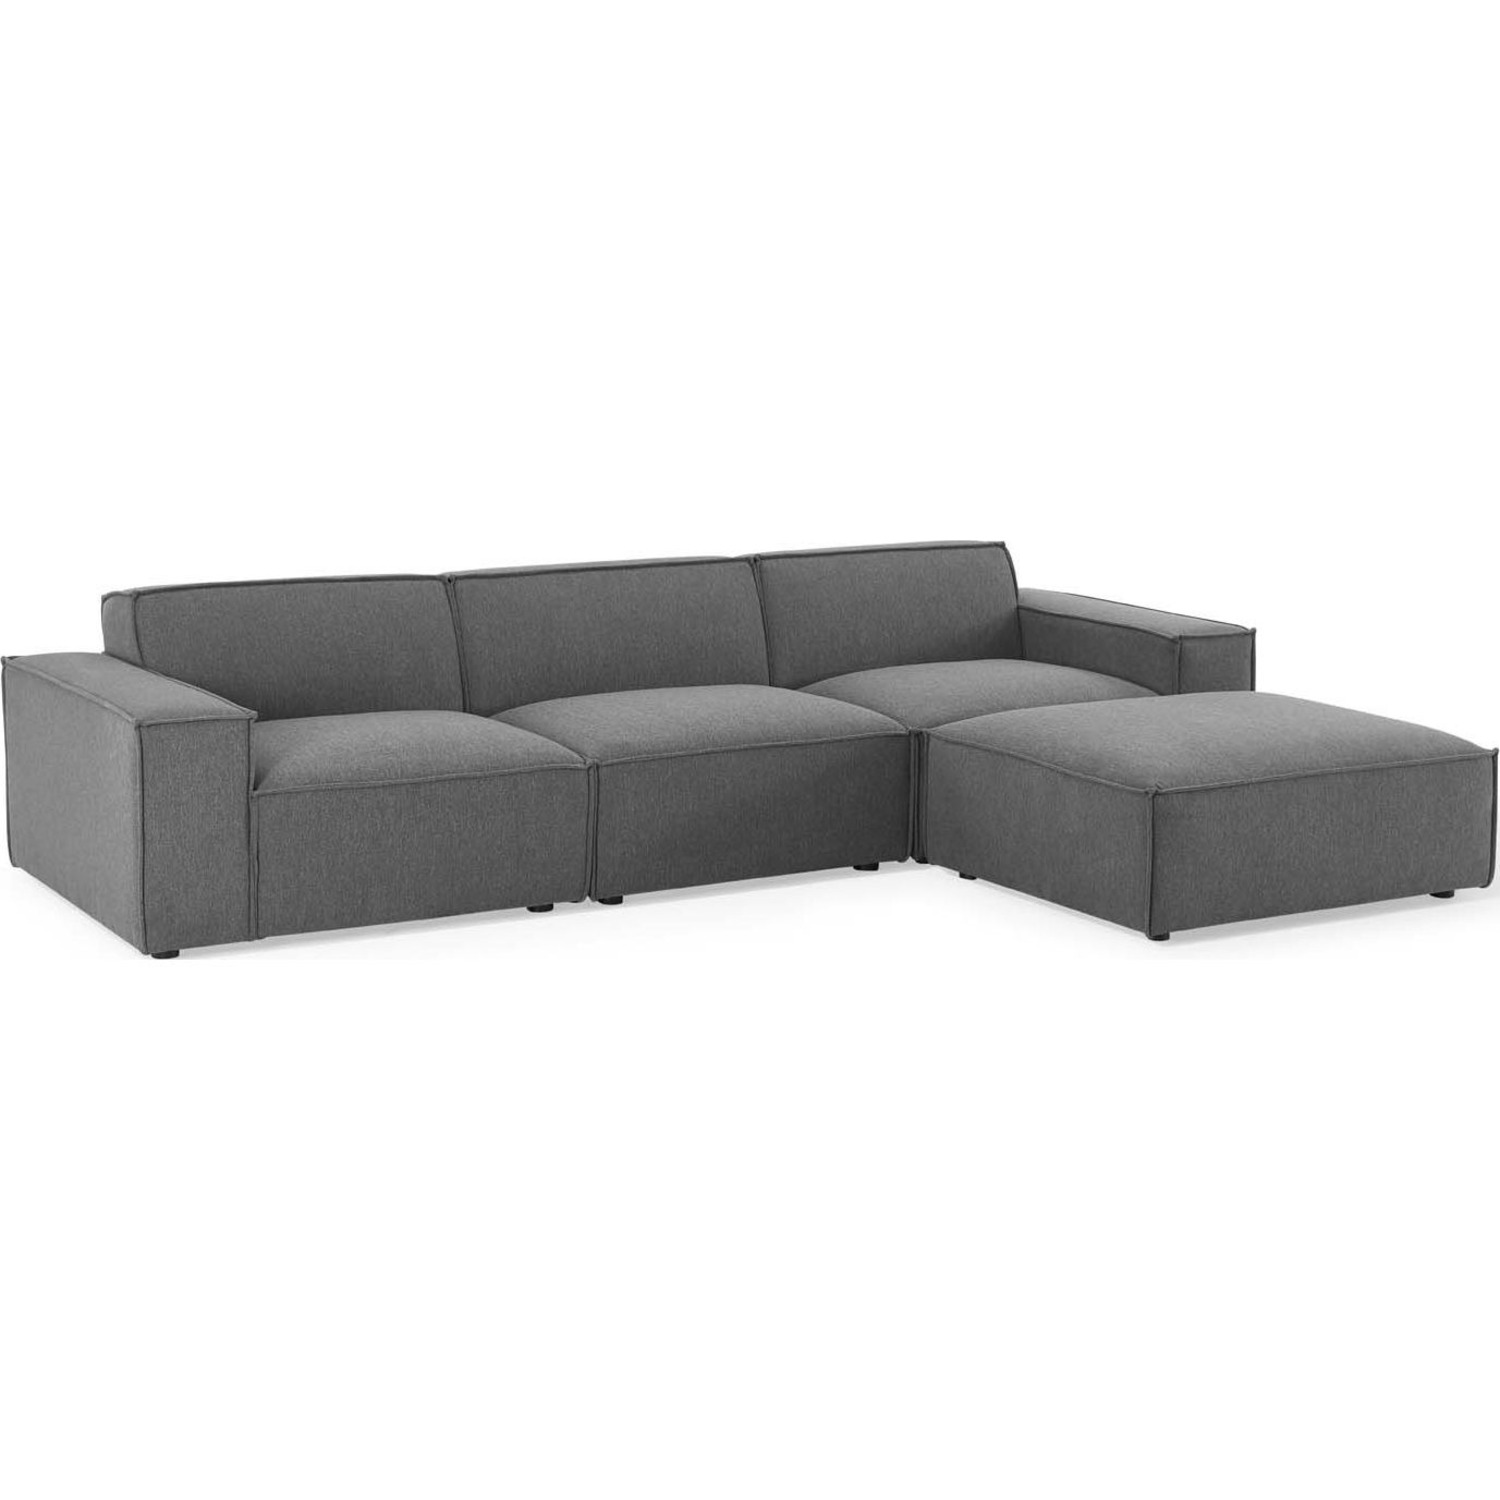 4-Piece Sectional Sofa In Charcoal Fabric - image-0